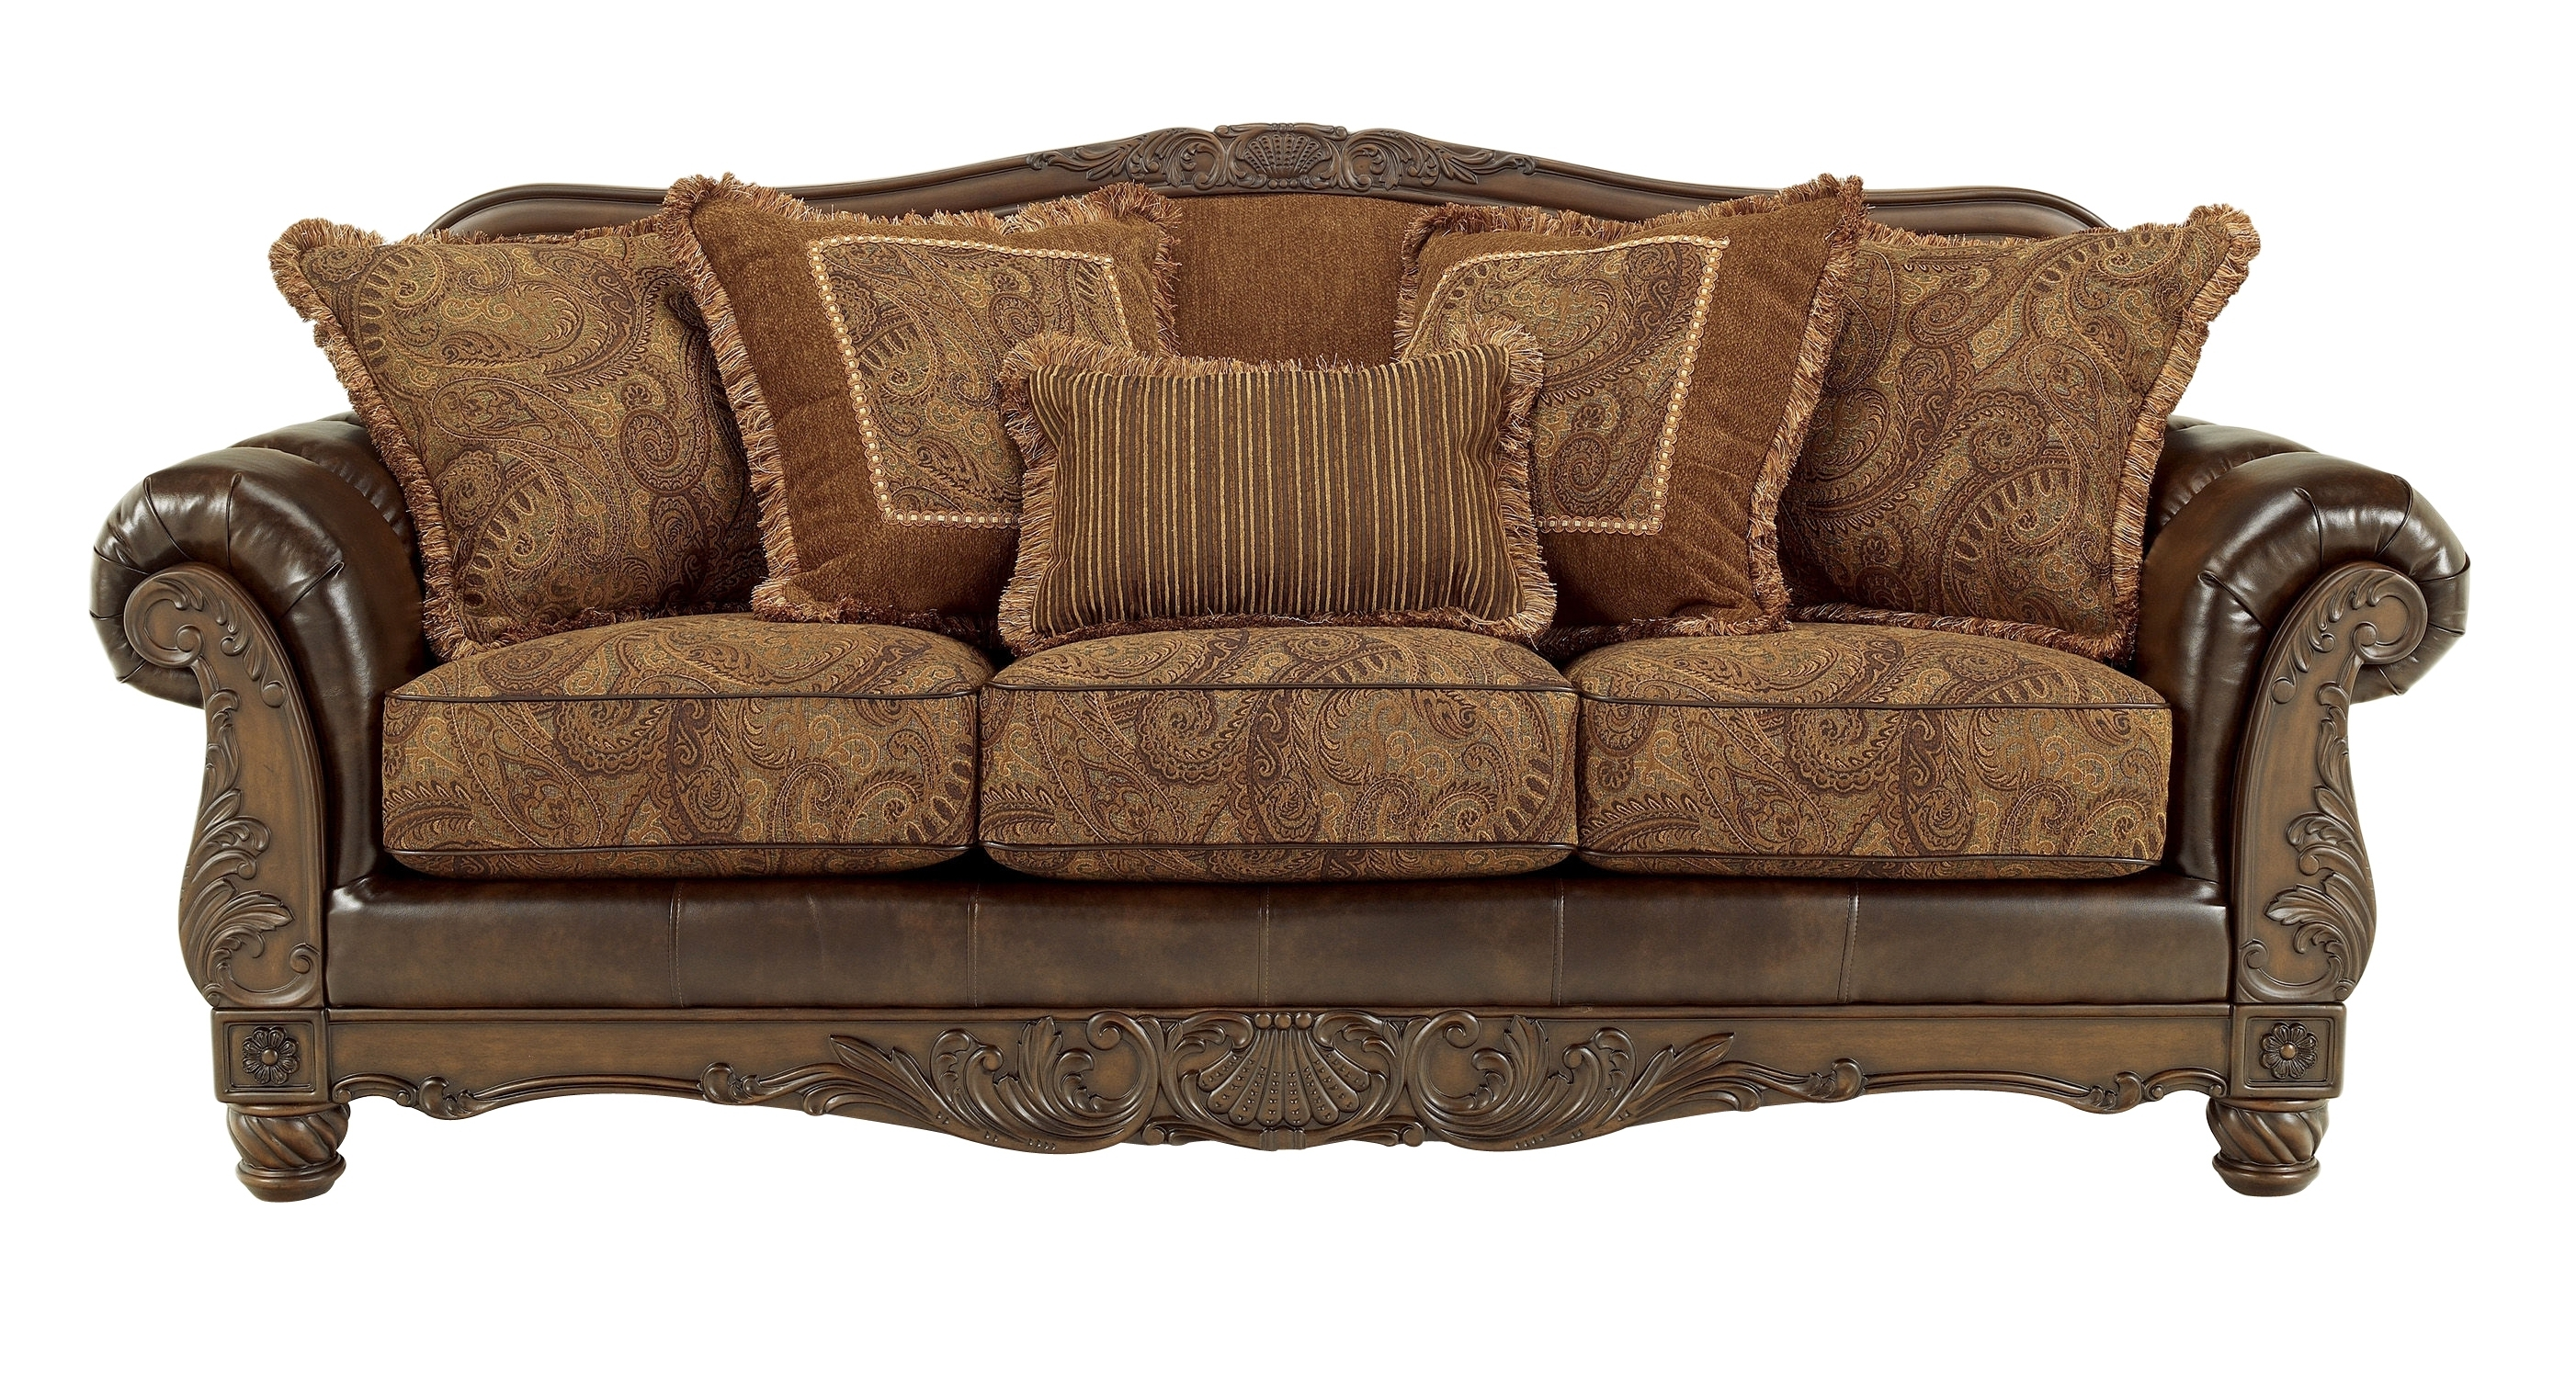 Ashley Furniture Fresco Durablend Antique Sofa | The Classy Home in Antique Sofas (Image 5 of 10)